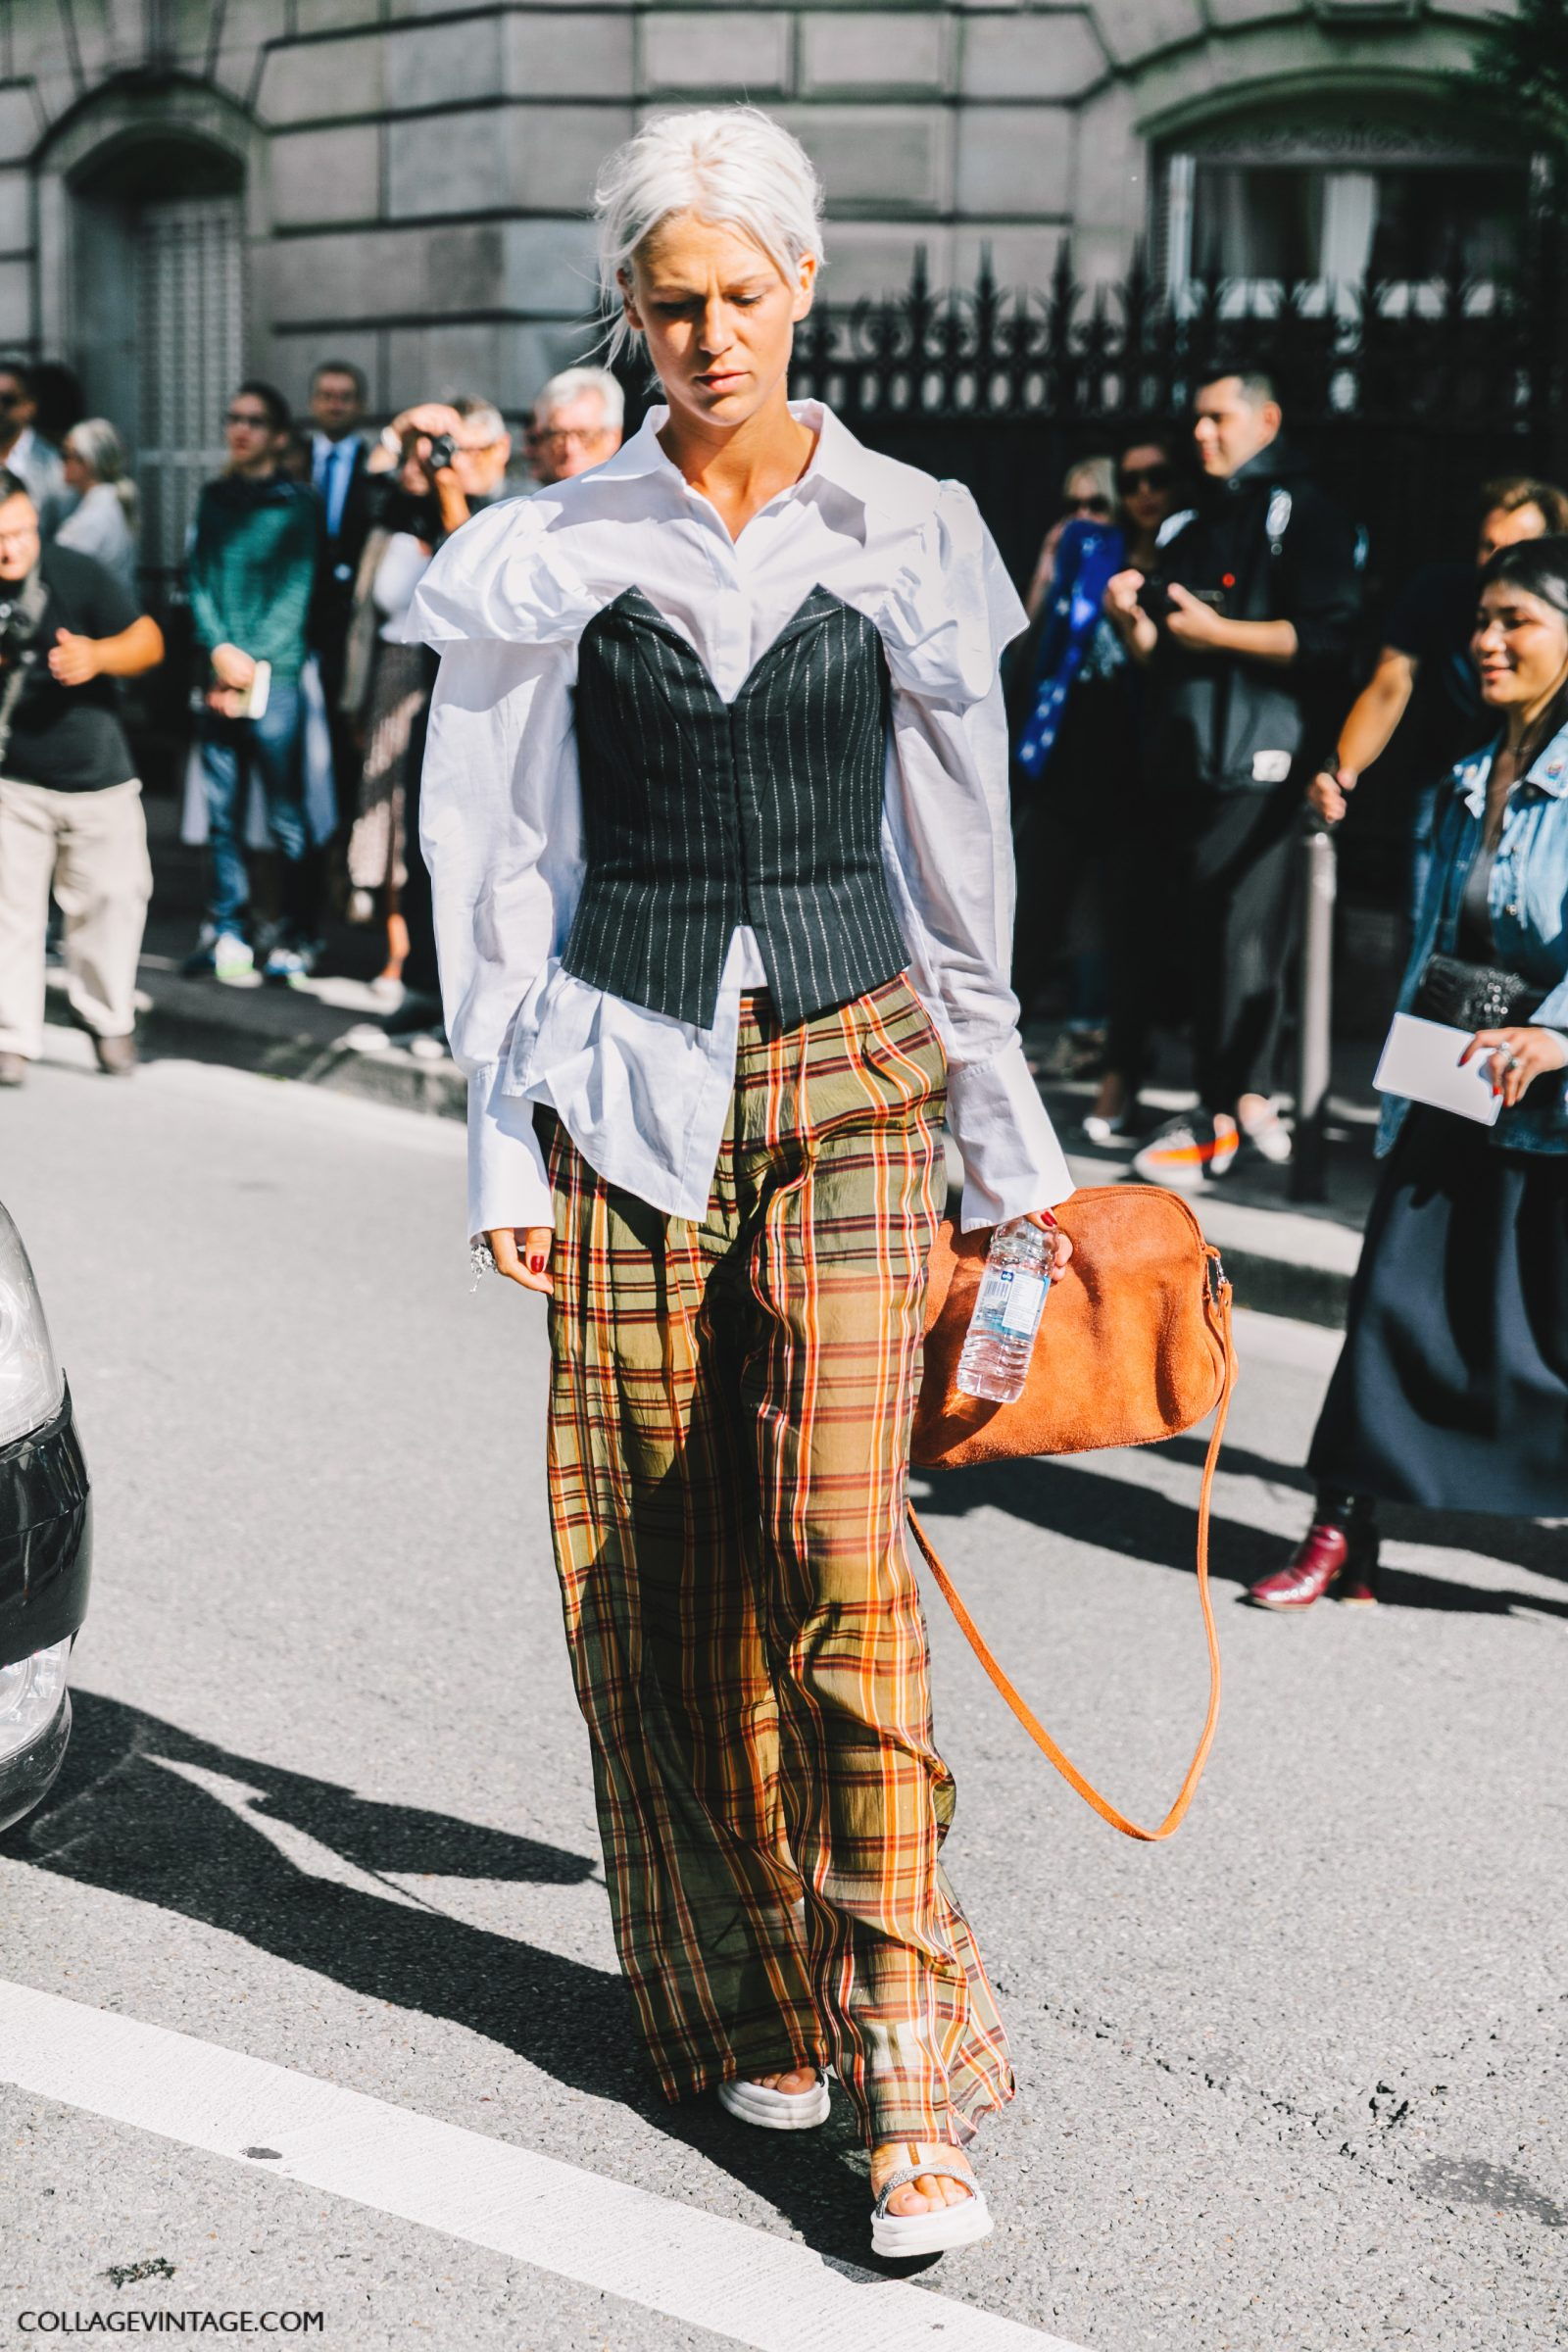 pfw-paris_fashion_week_ss17-street_style-outfits-collage_vintage-rochas-courreges-dries_van_noten-lanvin-guy_laroche-159